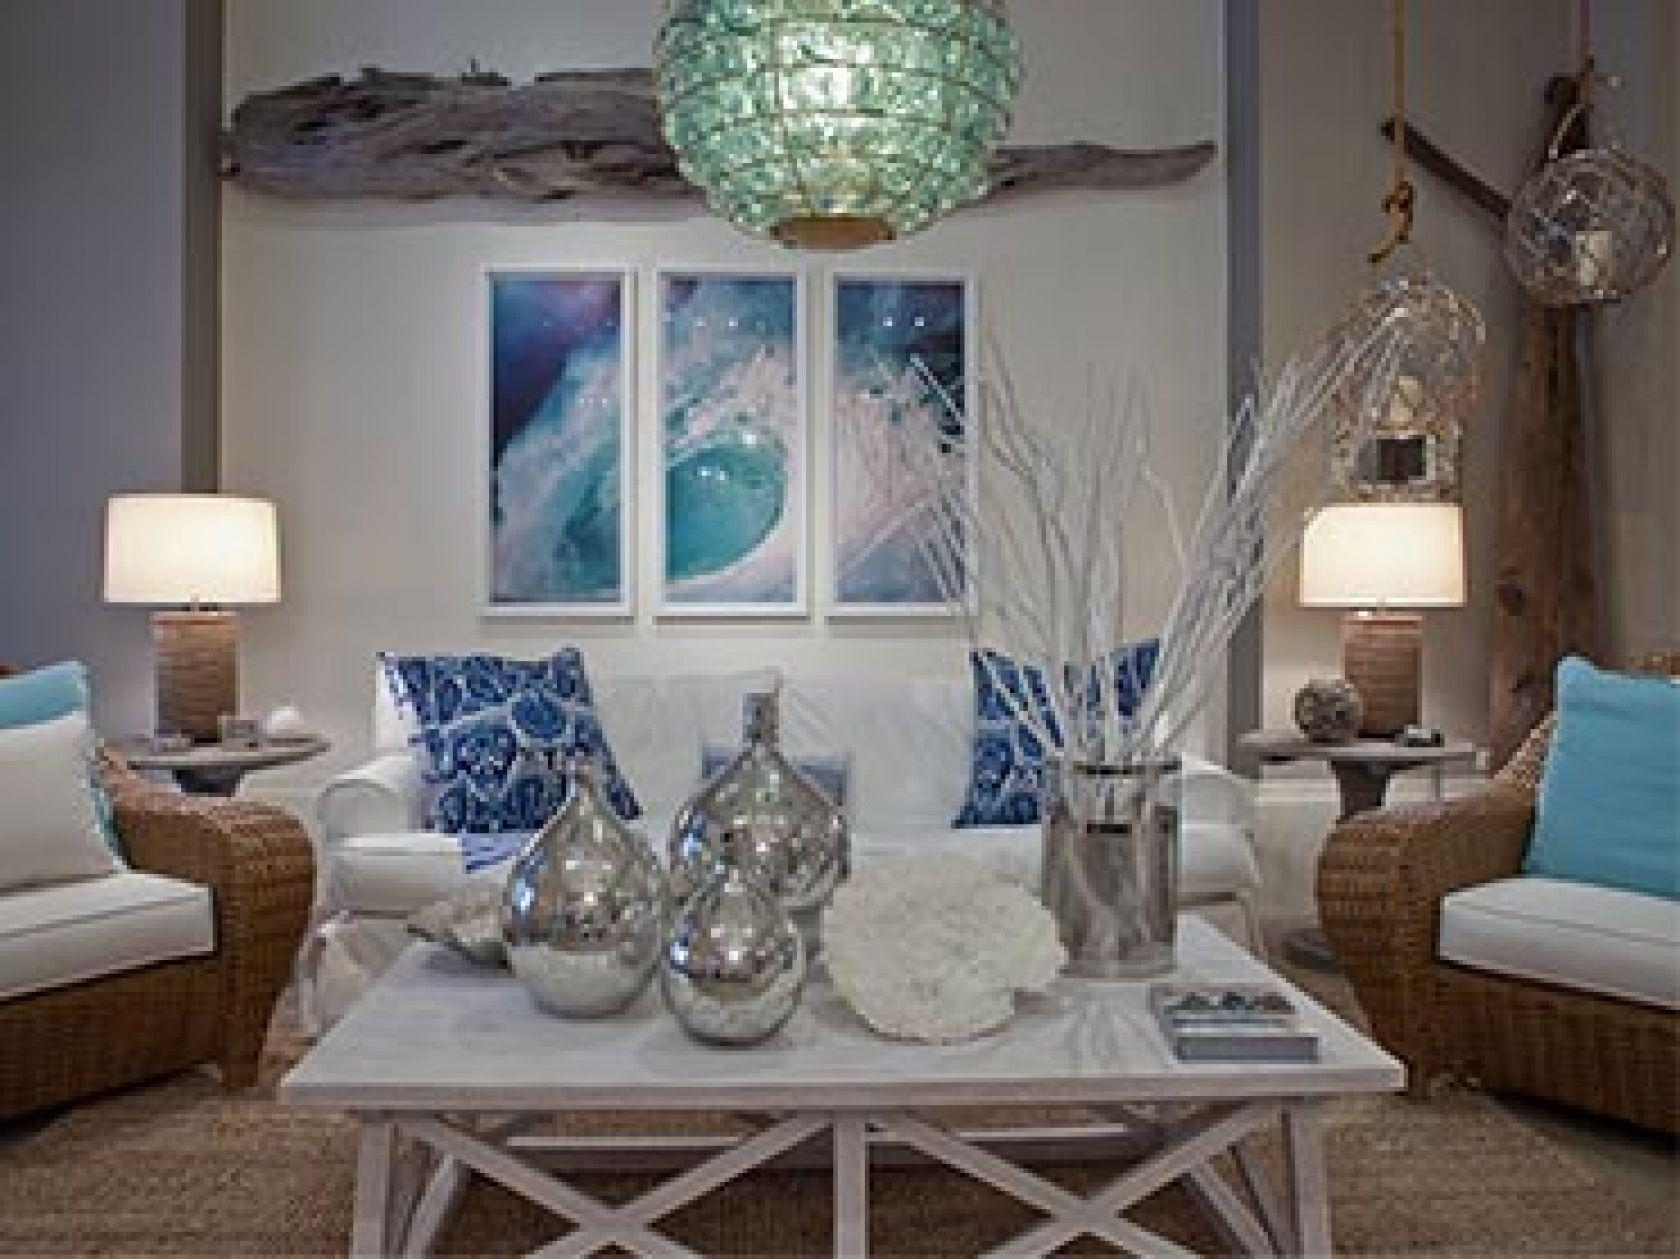 Coastal Home Decor & Nautical Furniture – Lighting, Nautical For Beach Cottage Wall Decors (View 20 of 20)